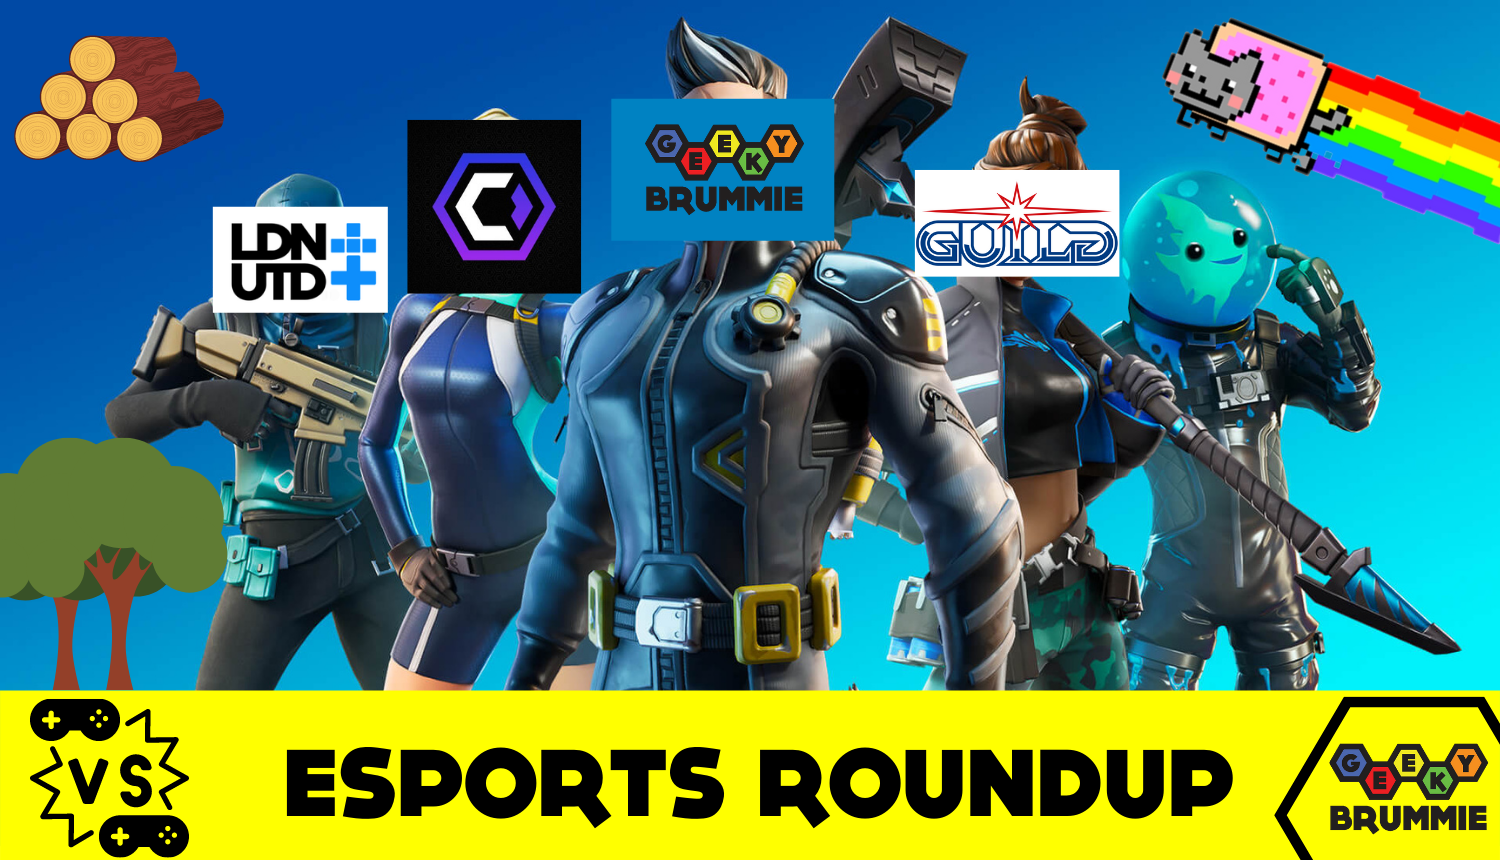 Esports Roundup – Planting trees and Designing NFTs